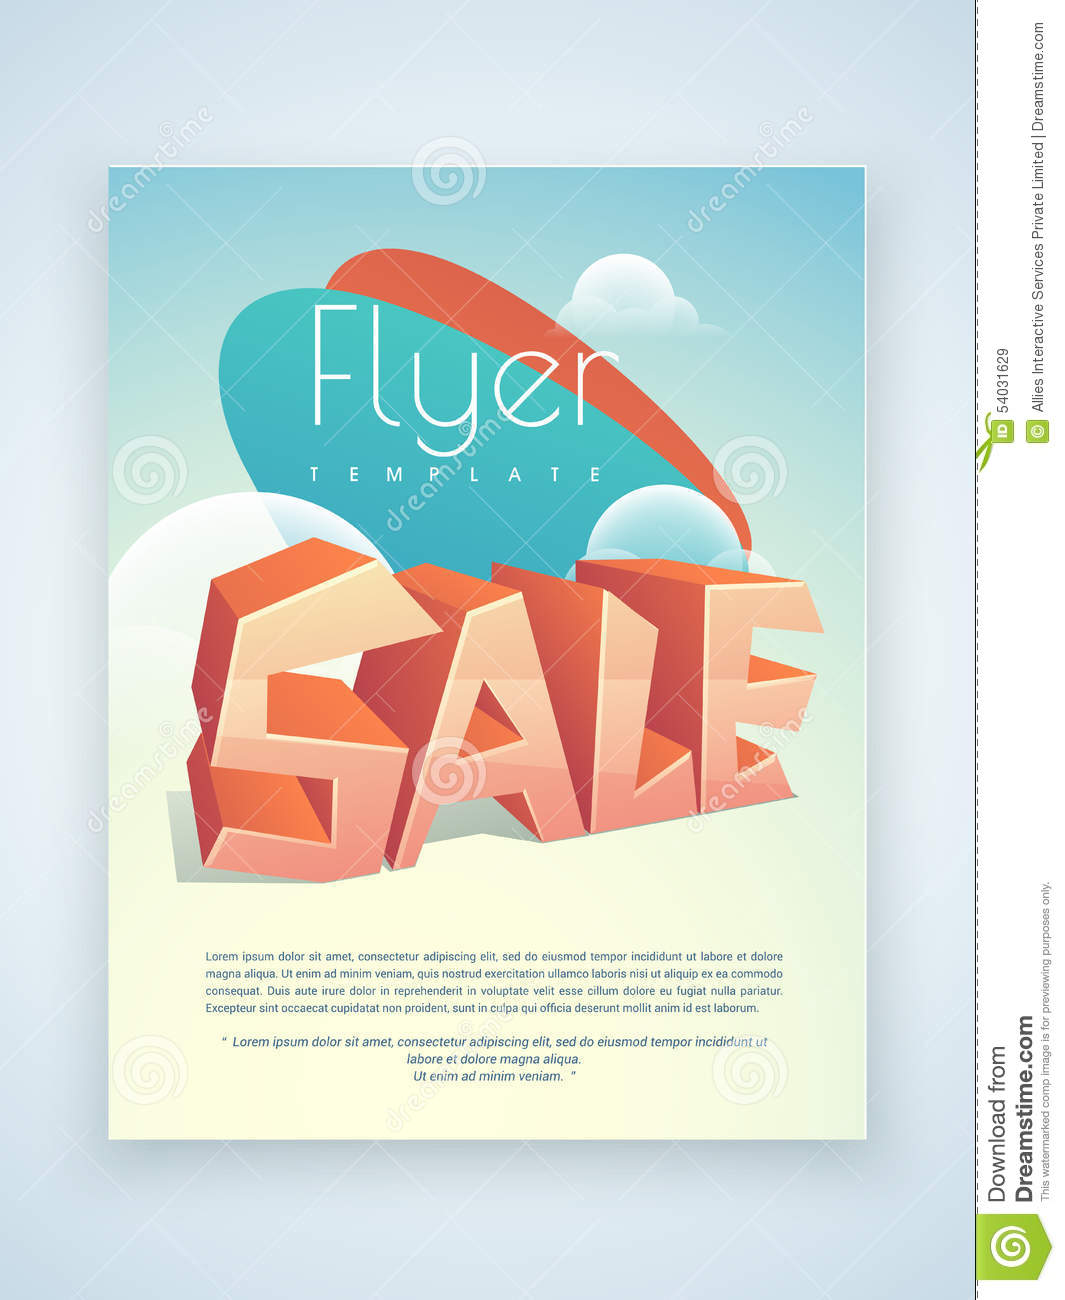 Newsletter template design with discount offer cartoon Architecture firm for sale